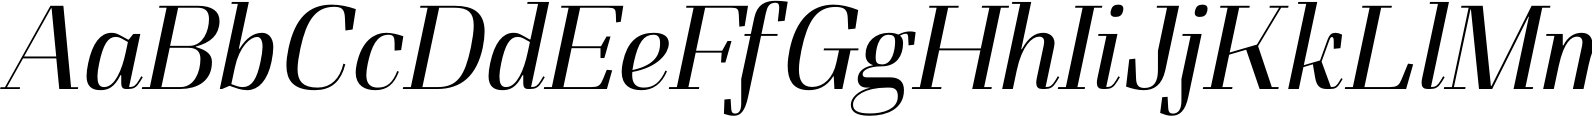 FelisItalic Light